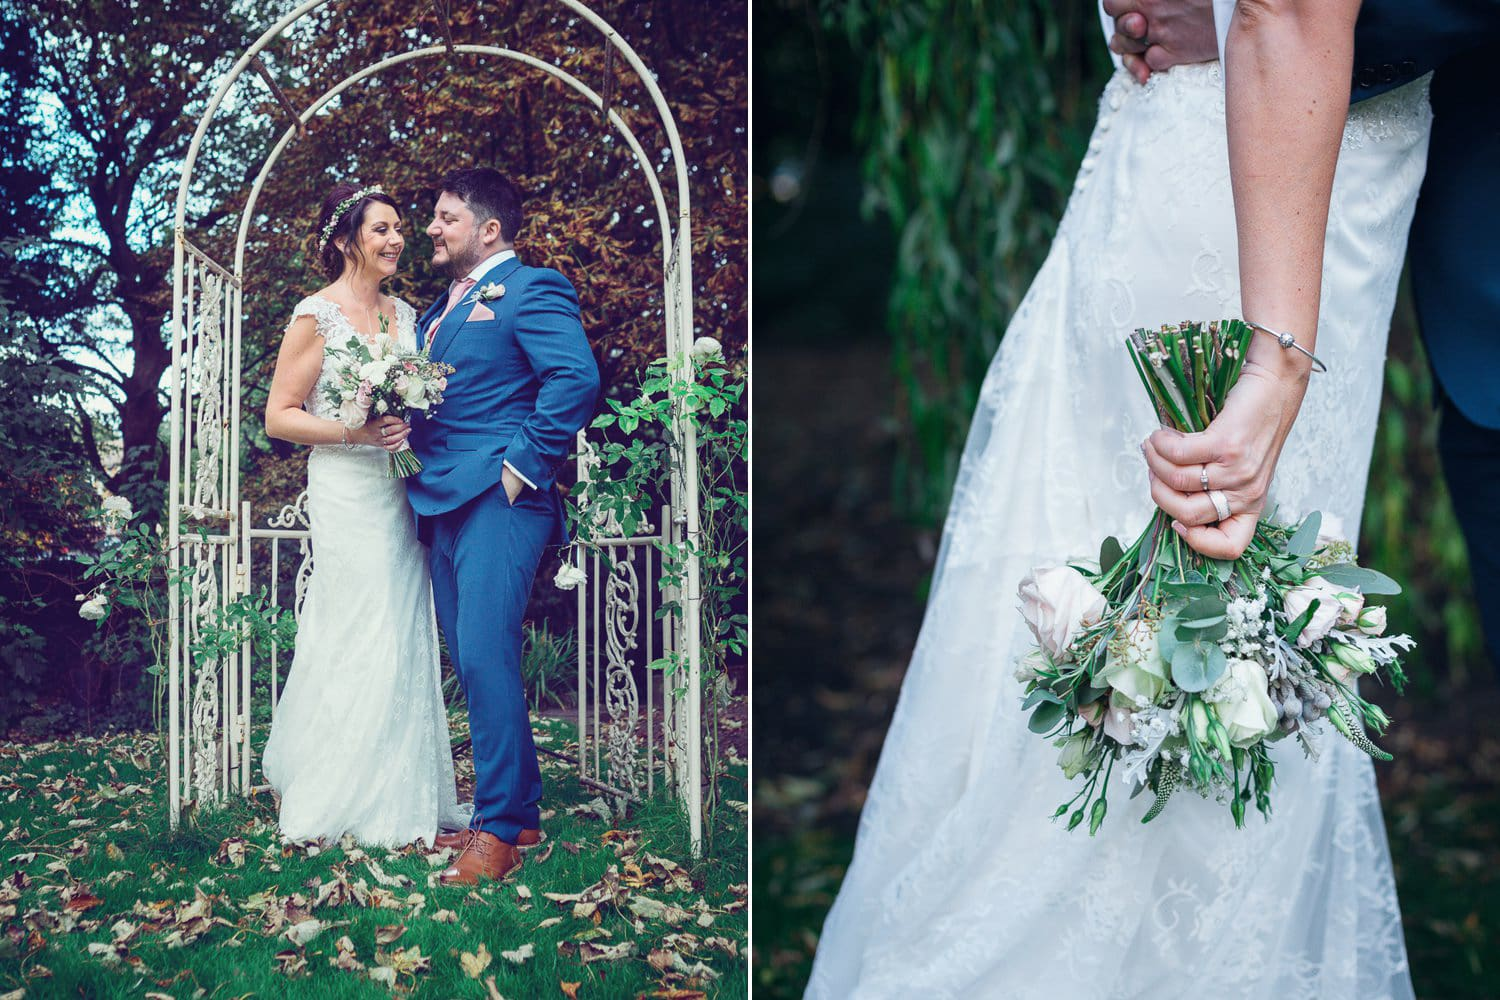 The Old Deanery Wedding, wedding flowers and archway